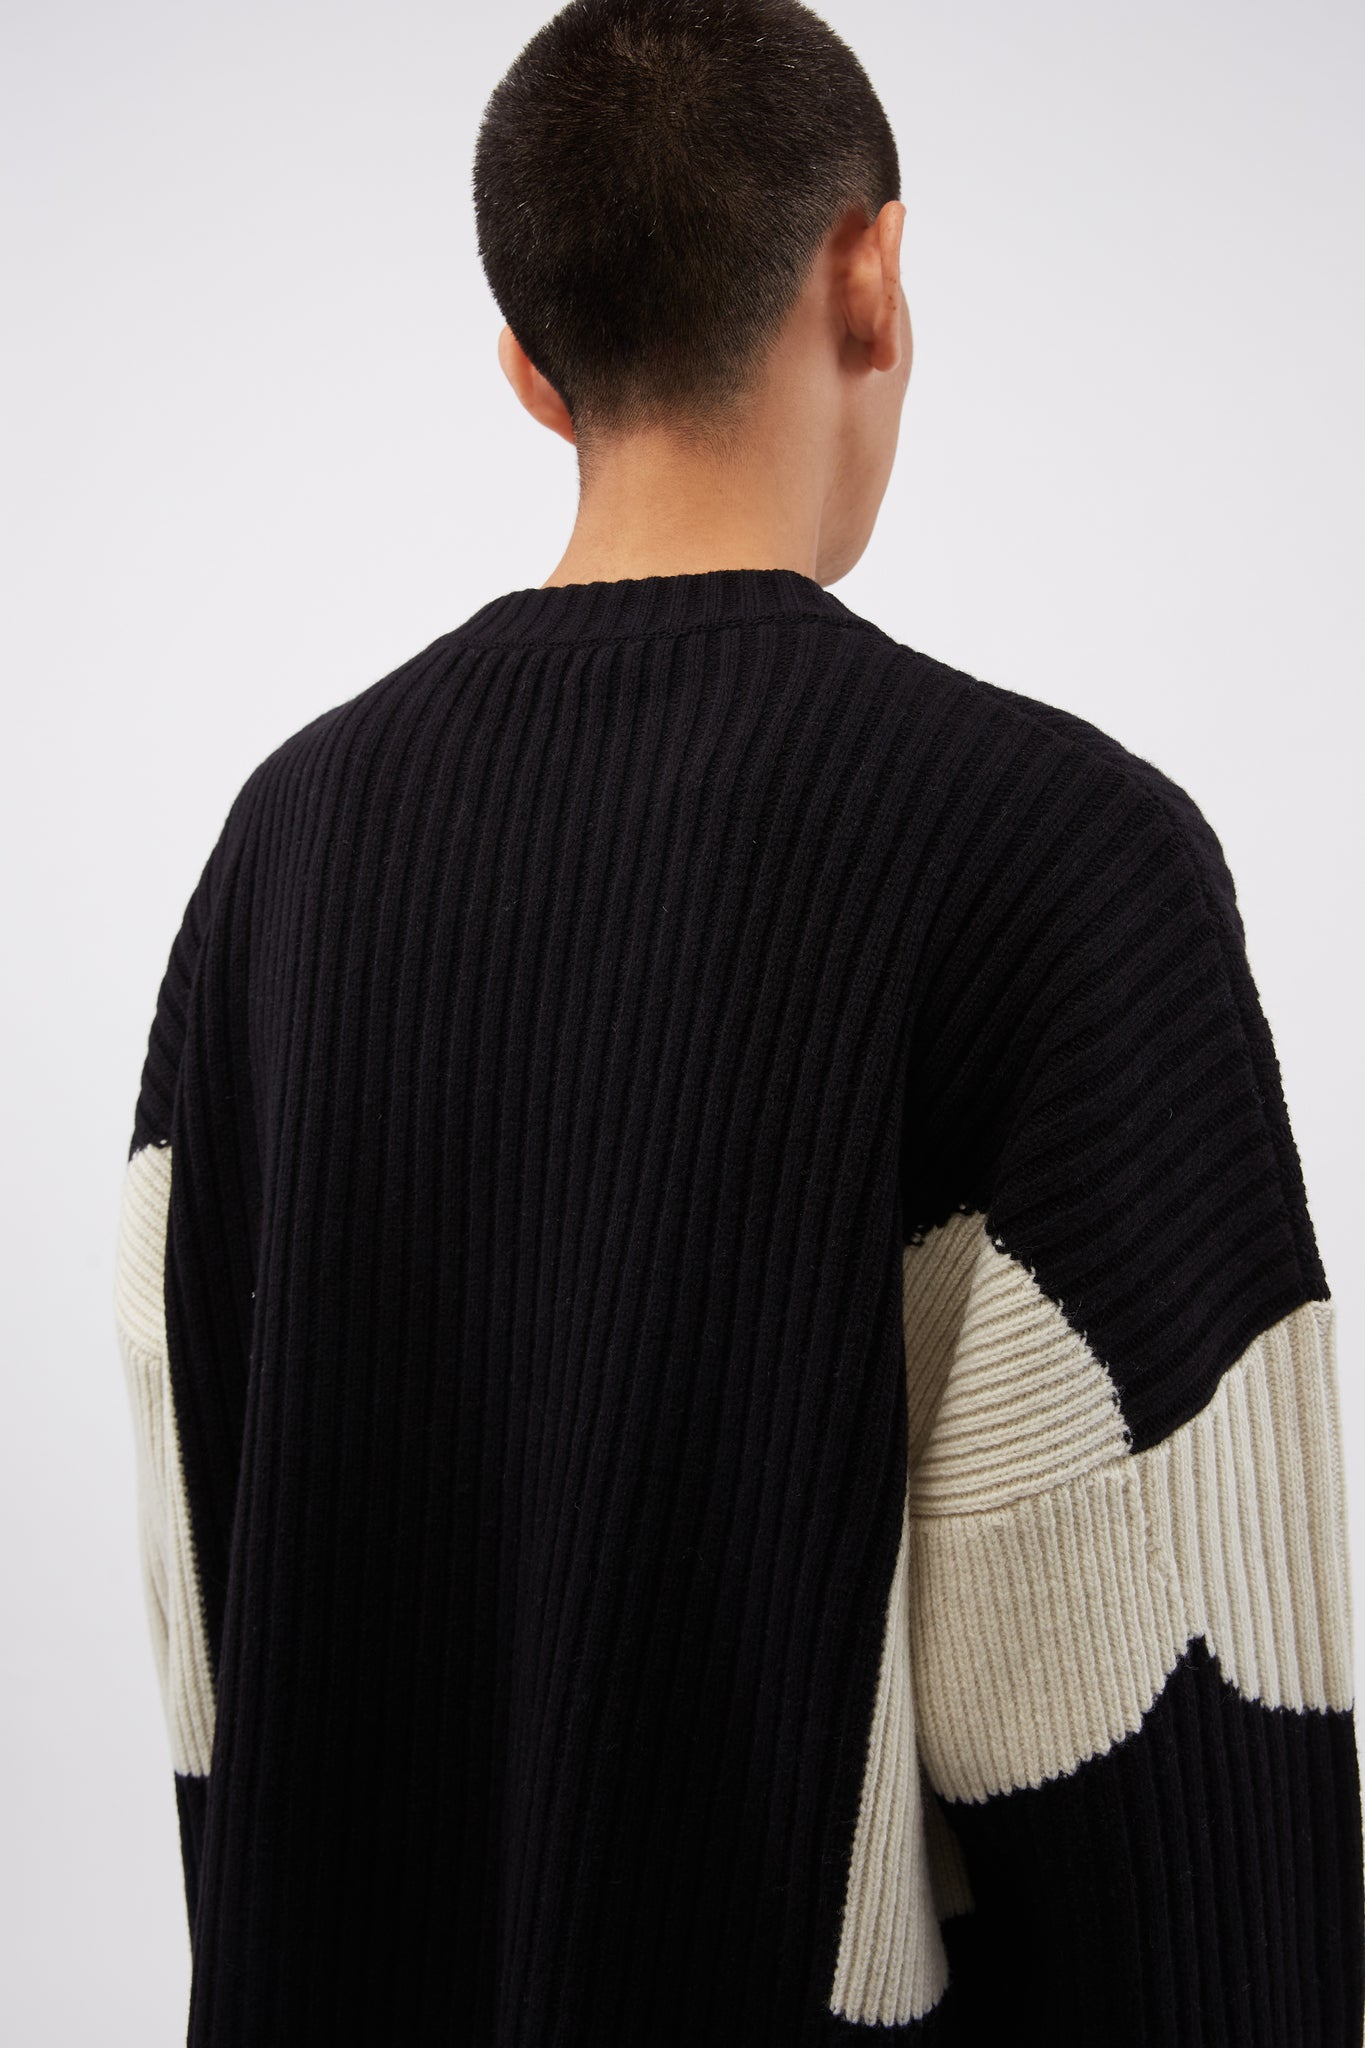 Knitted Unisex Color Blocked Jumper Black/Blue/Off-white